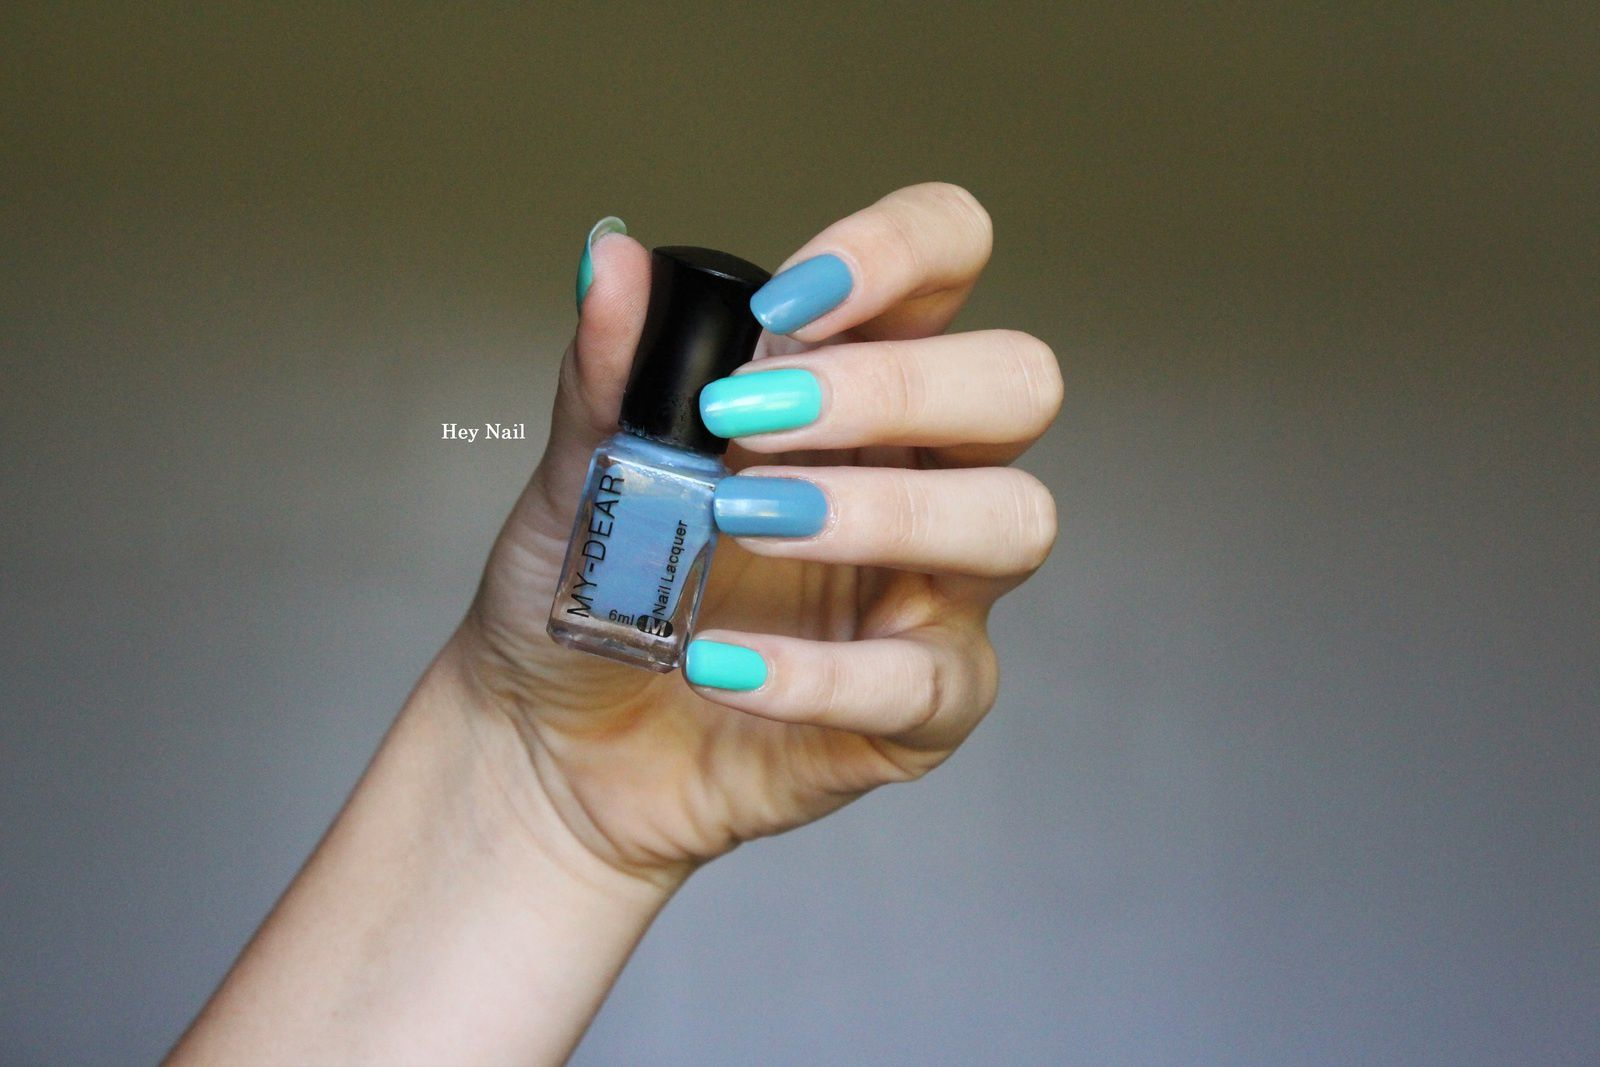 Un ongle chaud / un ongle froid